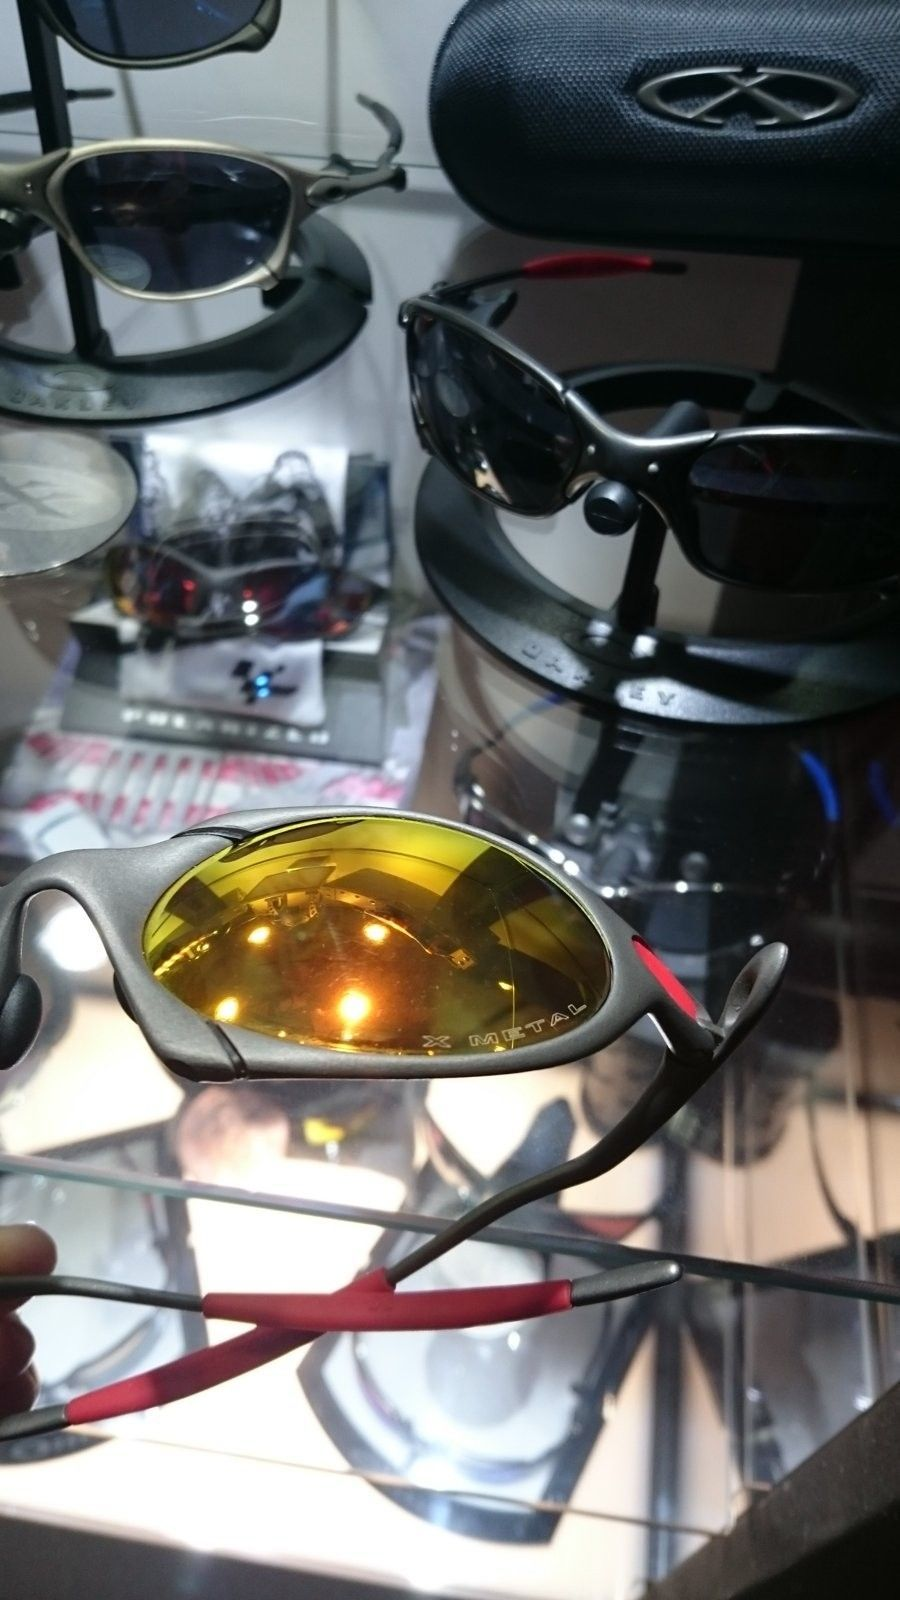 X-metal R1 with 2 sets of OEM lenses - DSC_0053.JPG